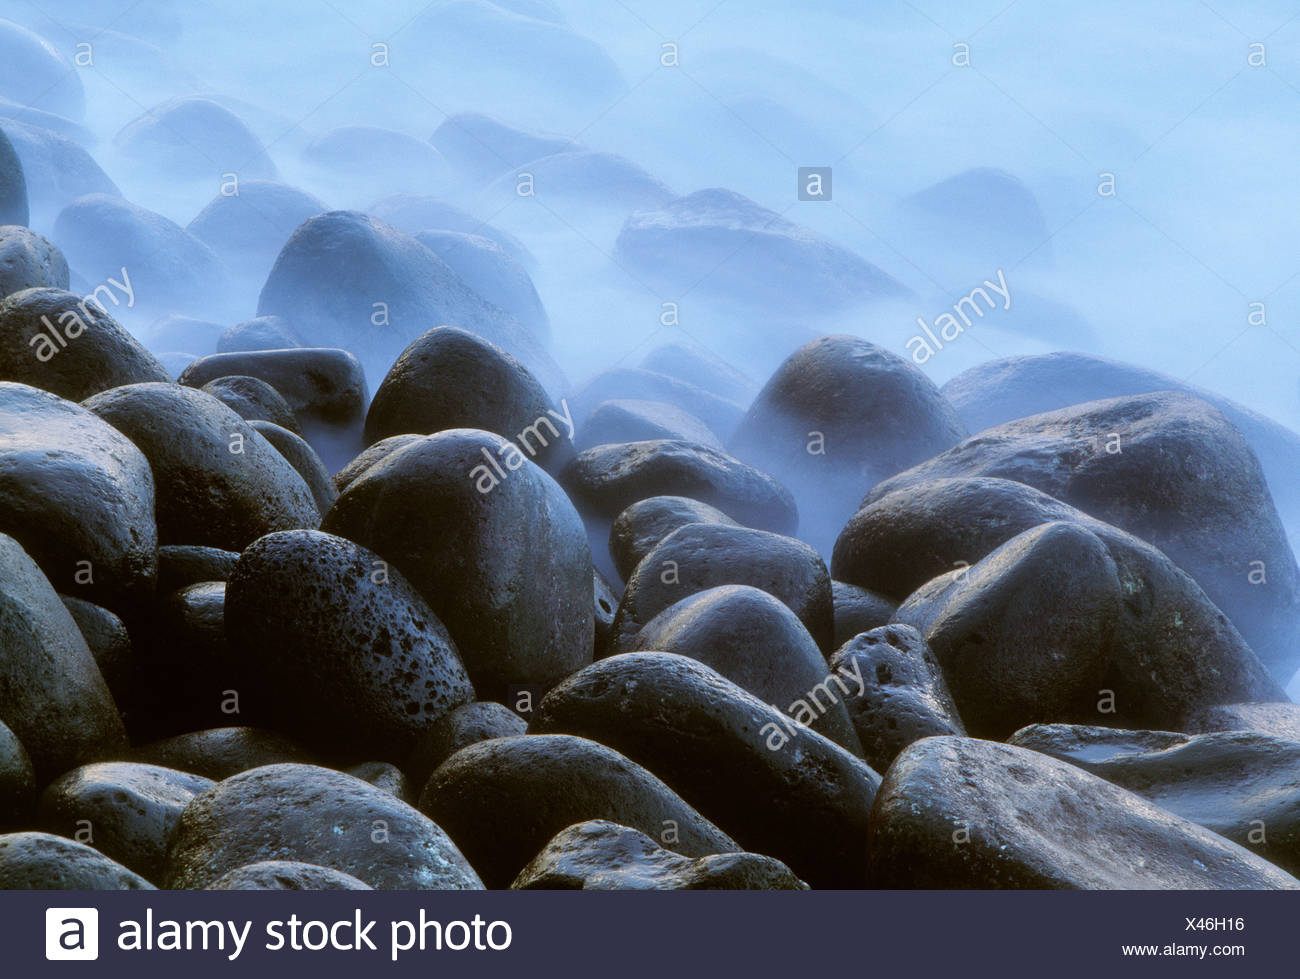 Volcanic rock, Puna coast, Hawaii - Stock Image